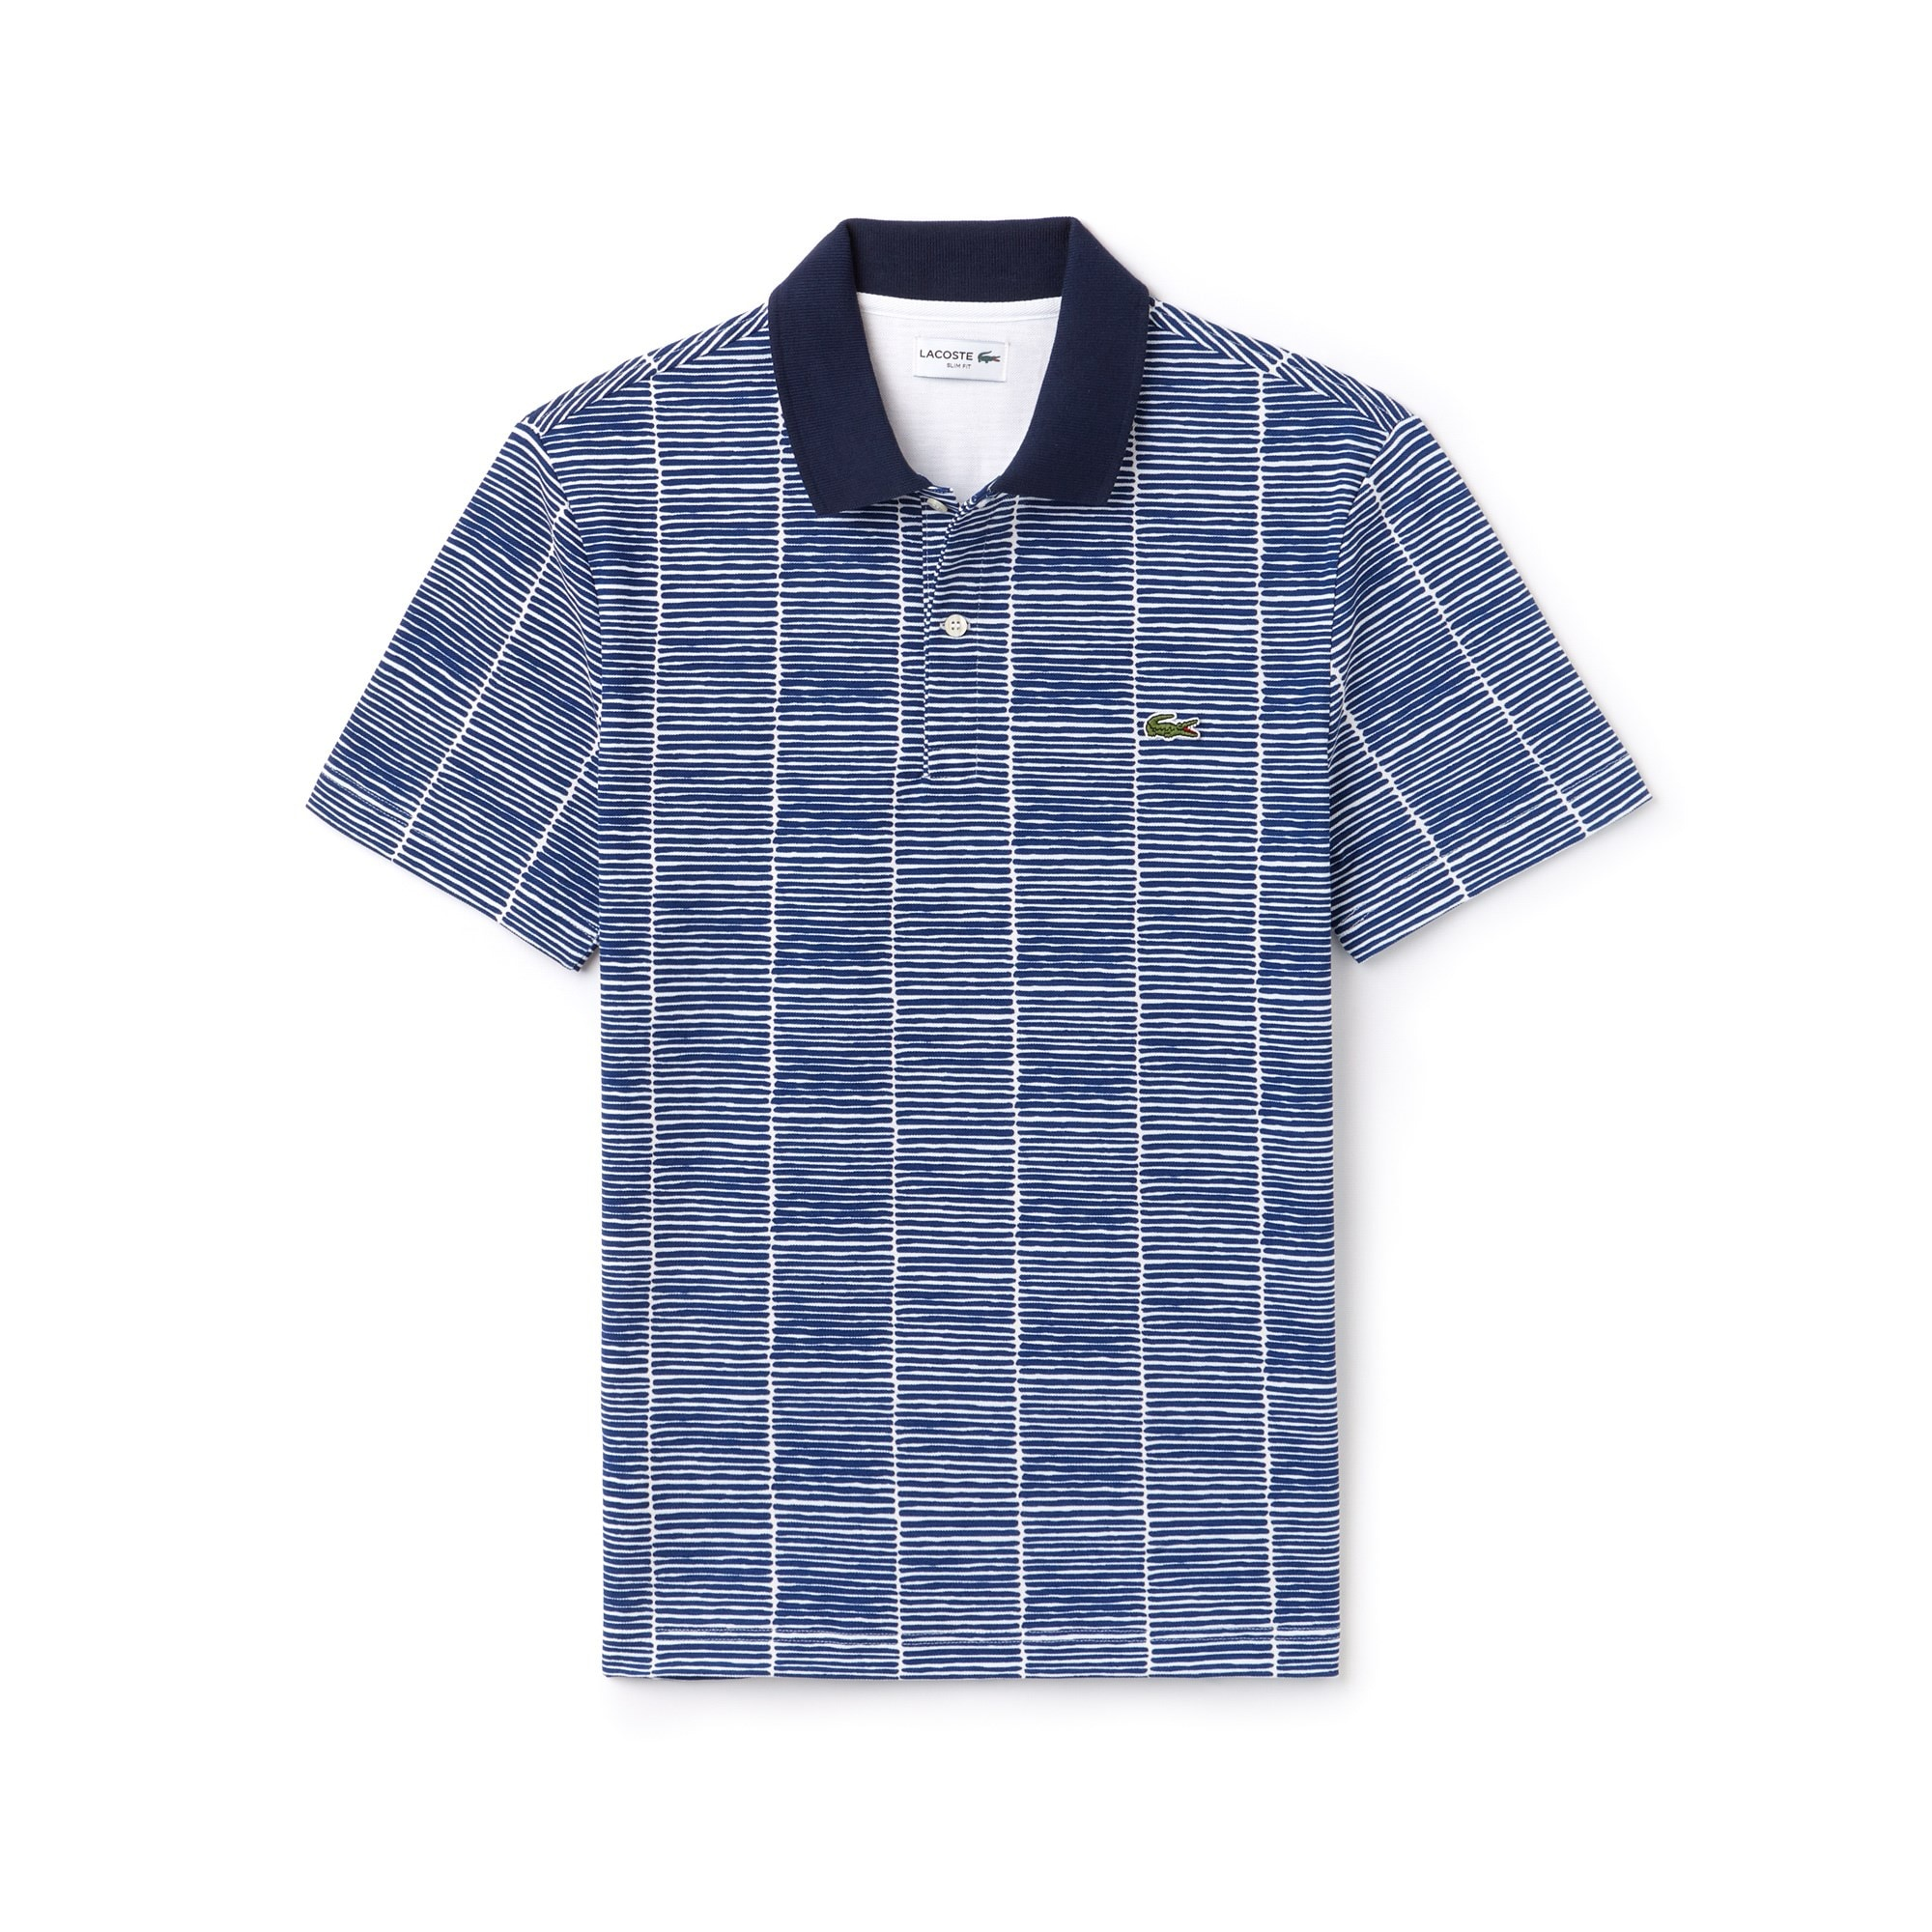 Men's Lacoste Slim Fit Print Cotton Piqué Polo Shirt